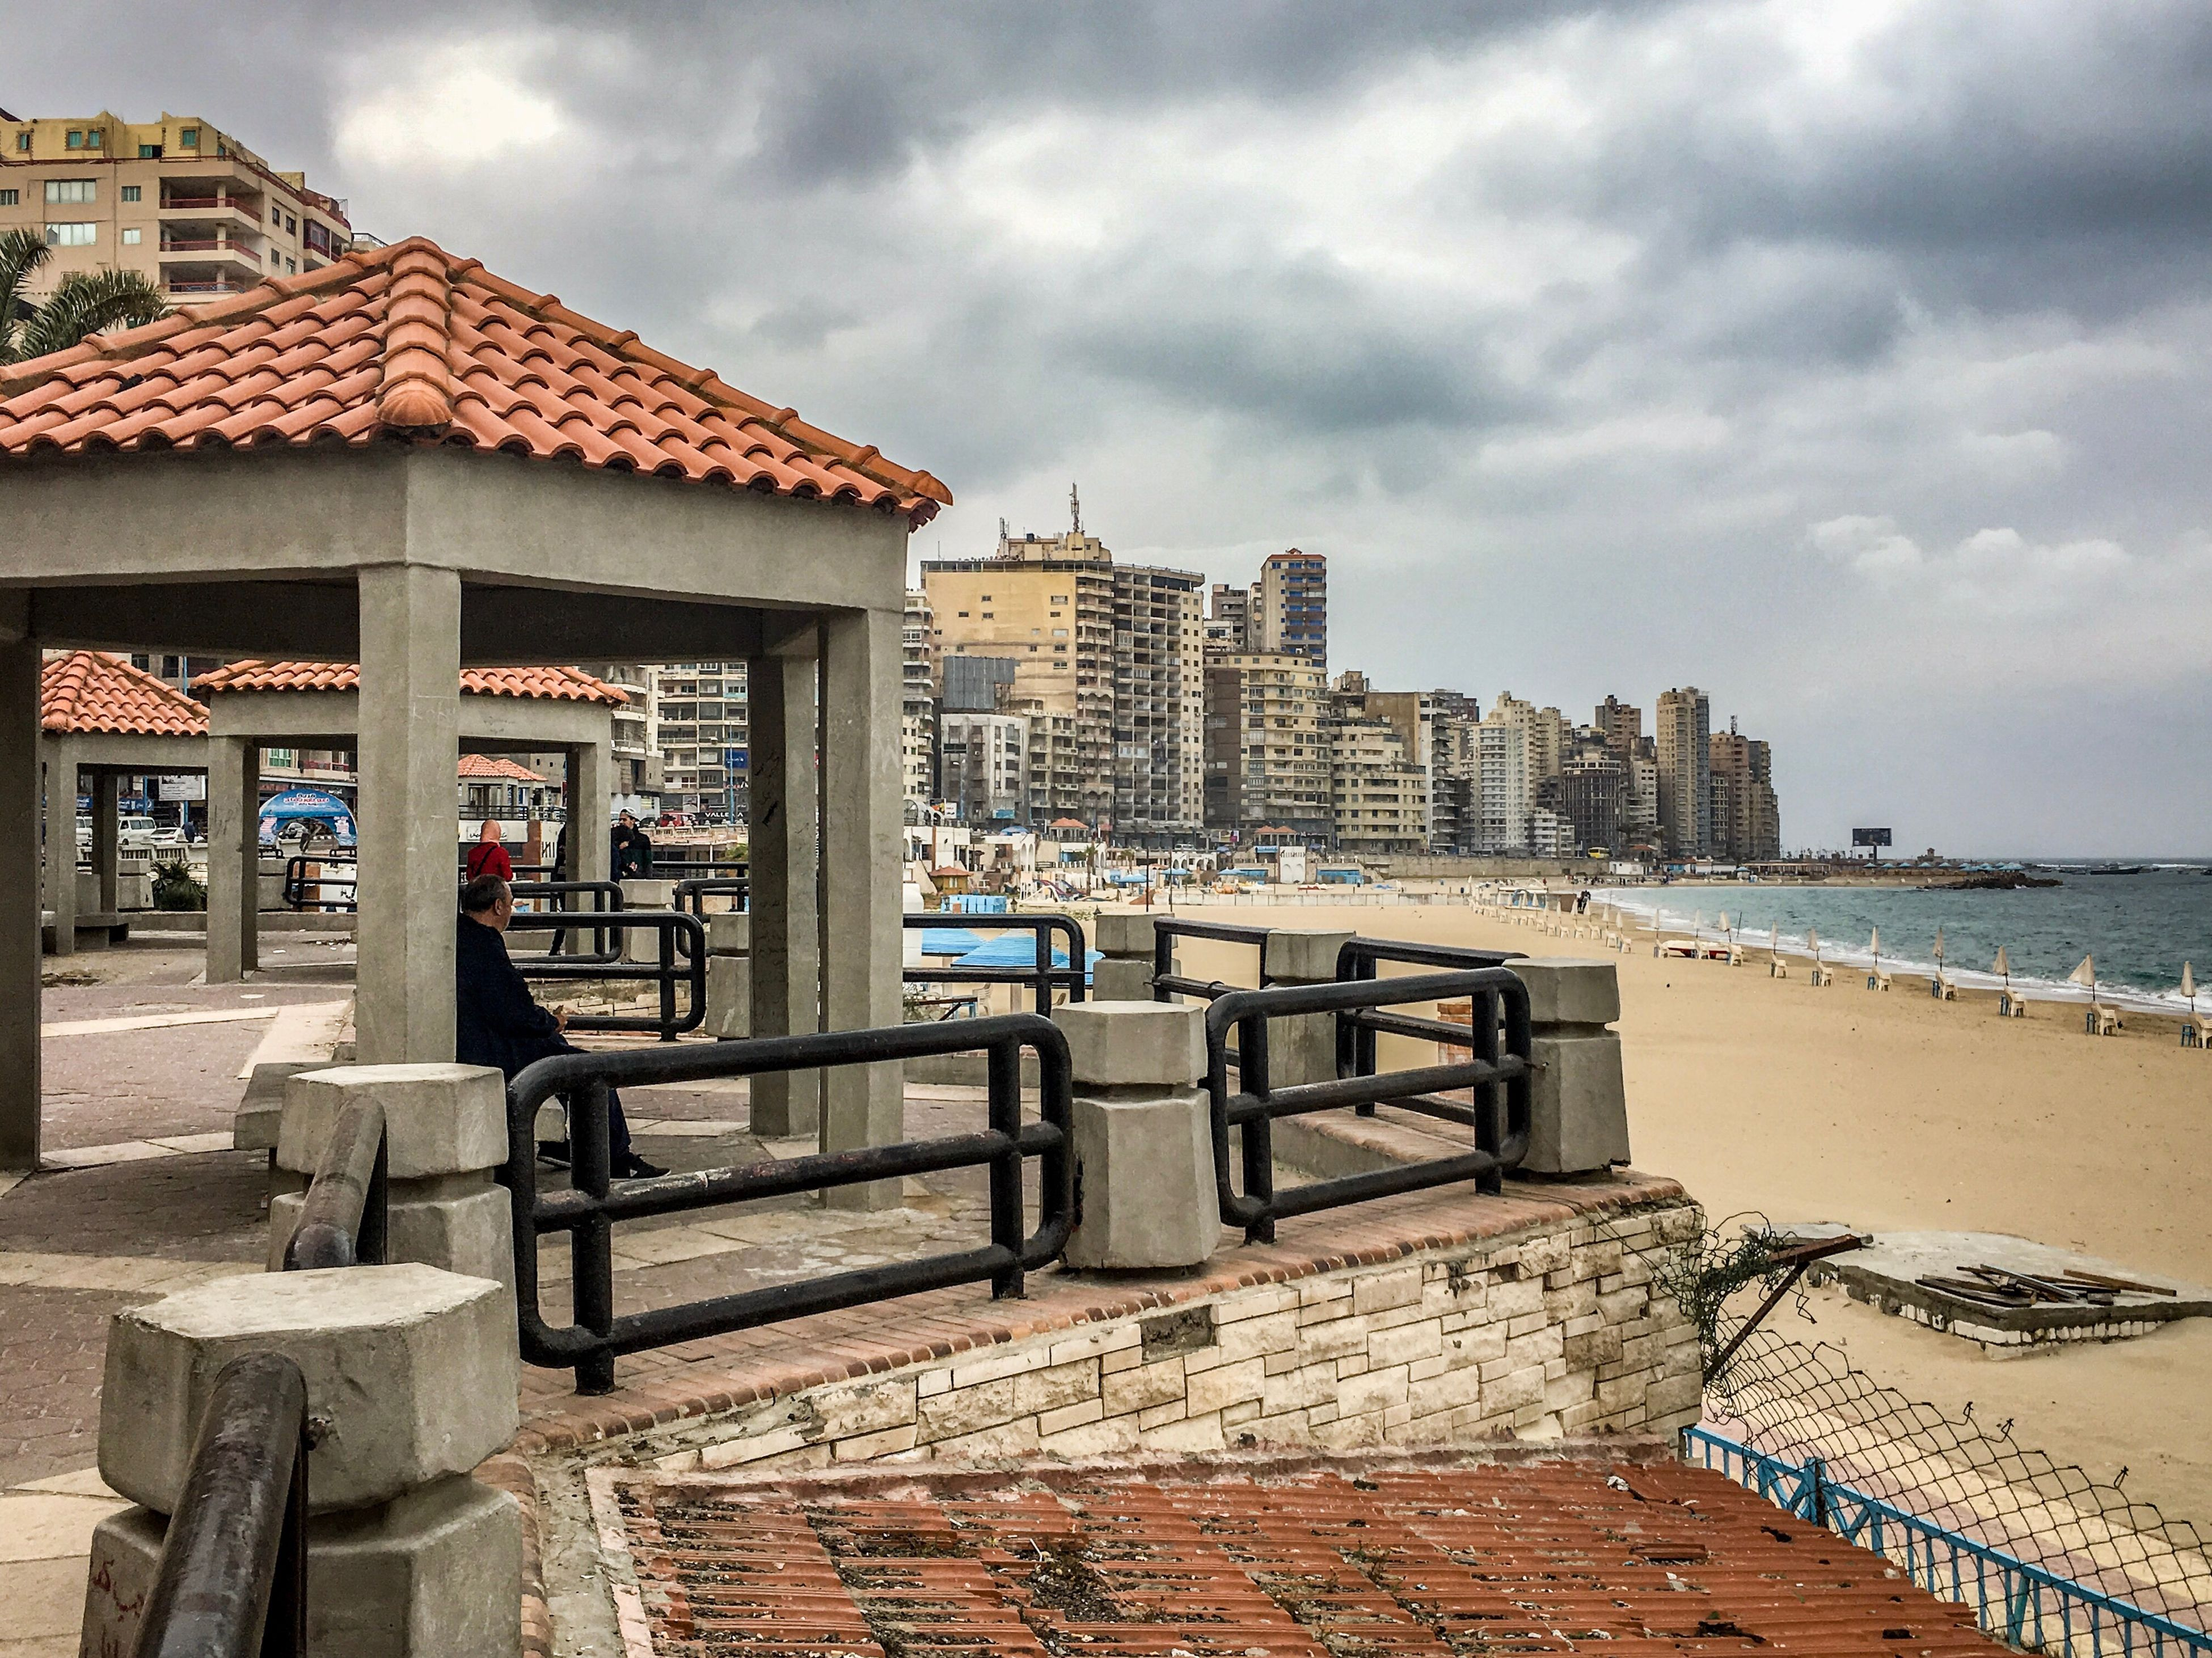 sky, cloud - sky, built structure, architecture, building exterior, city, outdoors, sunlight, day, sea, no people, beach, water, nature